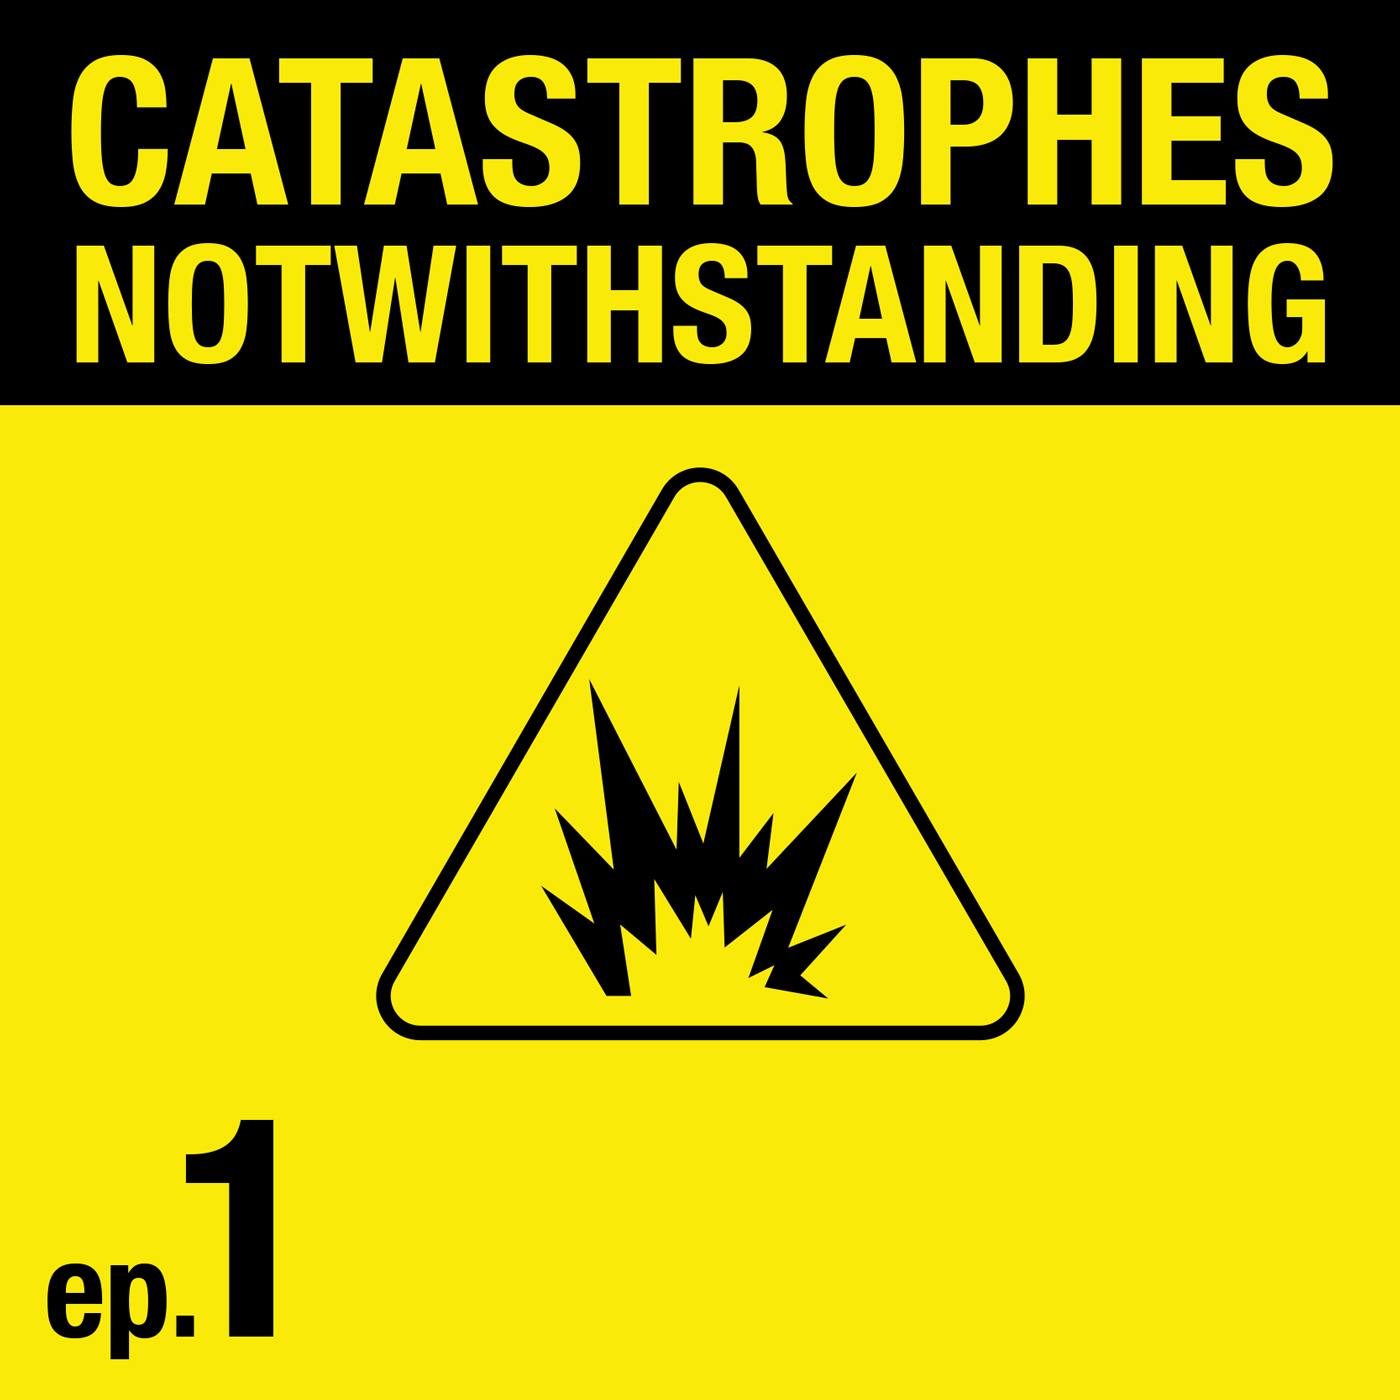 Cover Image of Catastrophes Notwithstanding Episode 1